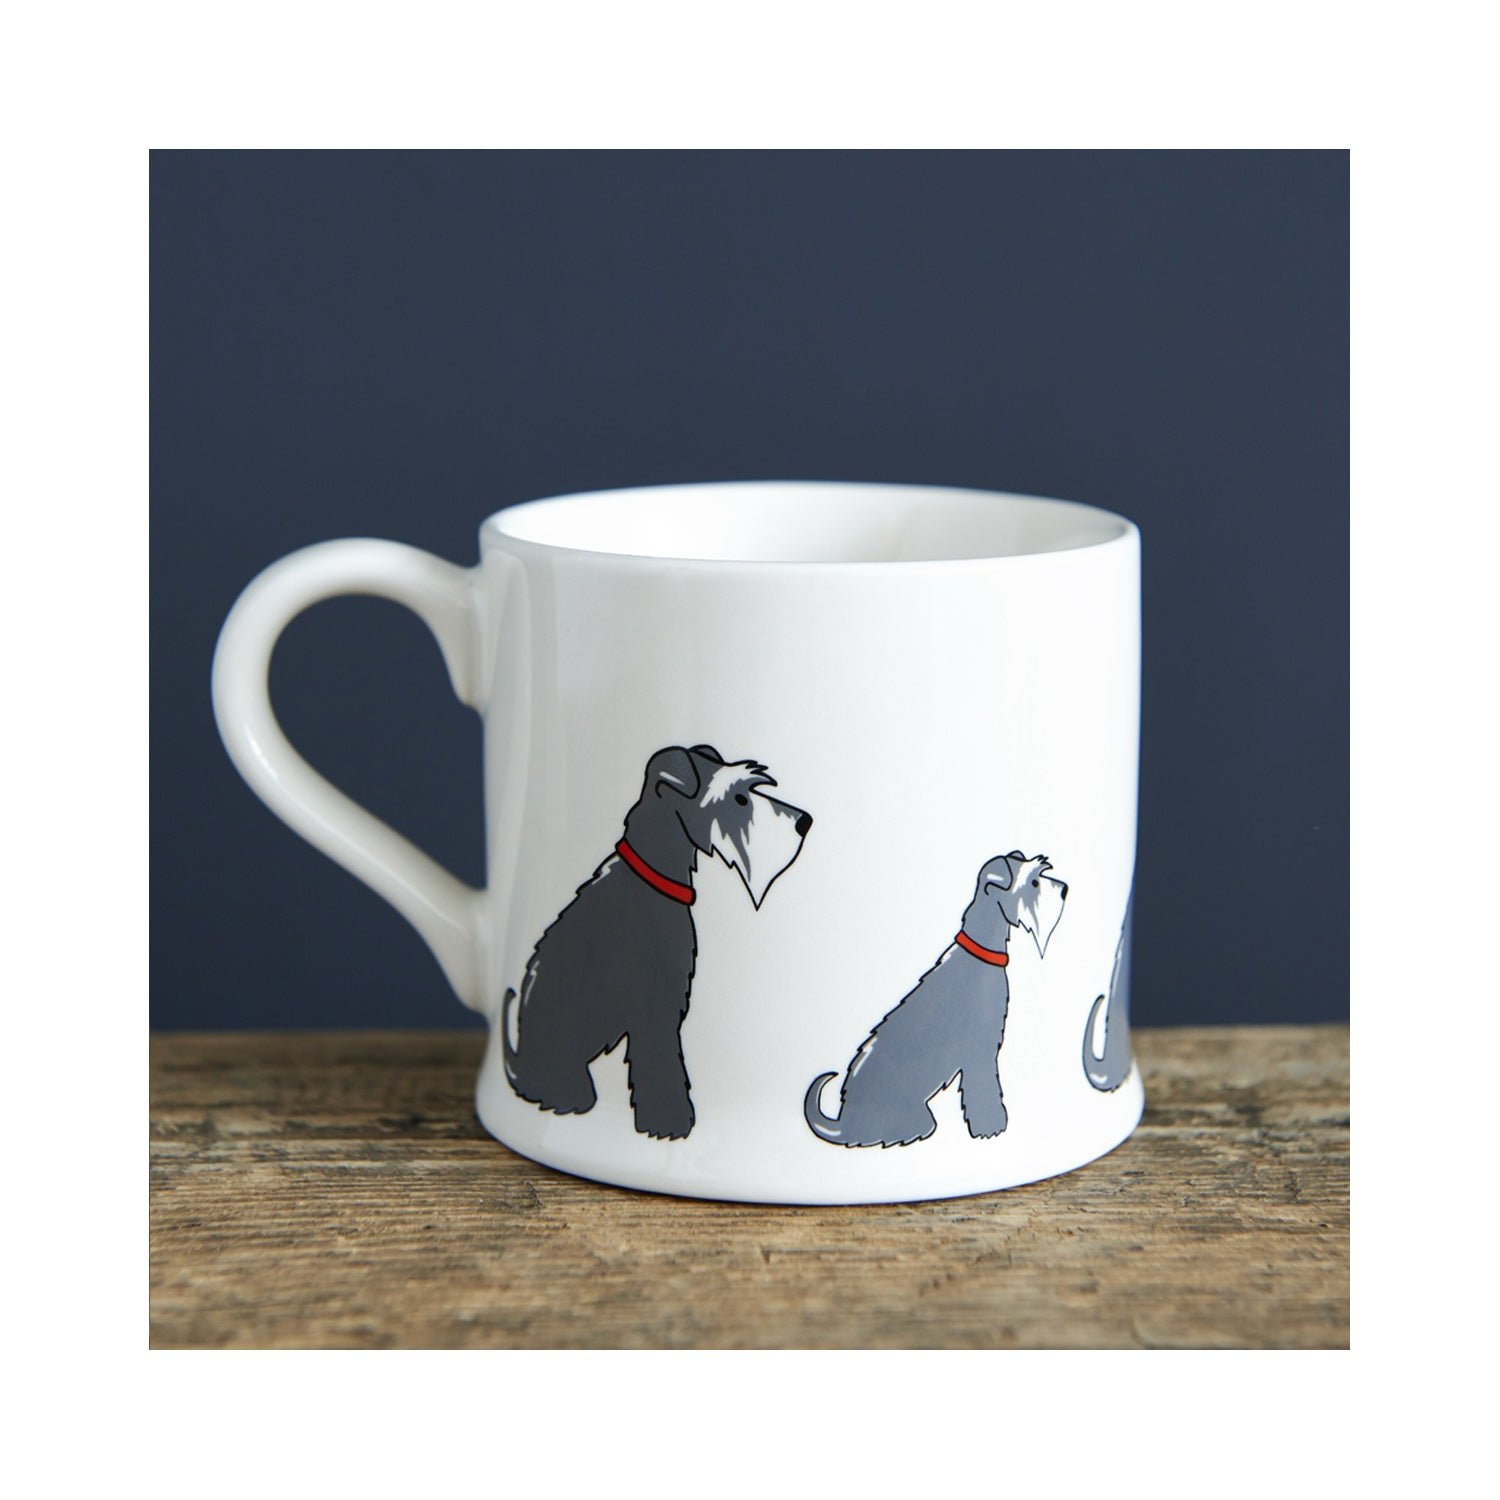 Dog Lover Gifts available at Dog Krazy Gifts- Eddie The Grey & White Schnauzer Mug - part of the Sweet William range available from Dog Krazy Gifts